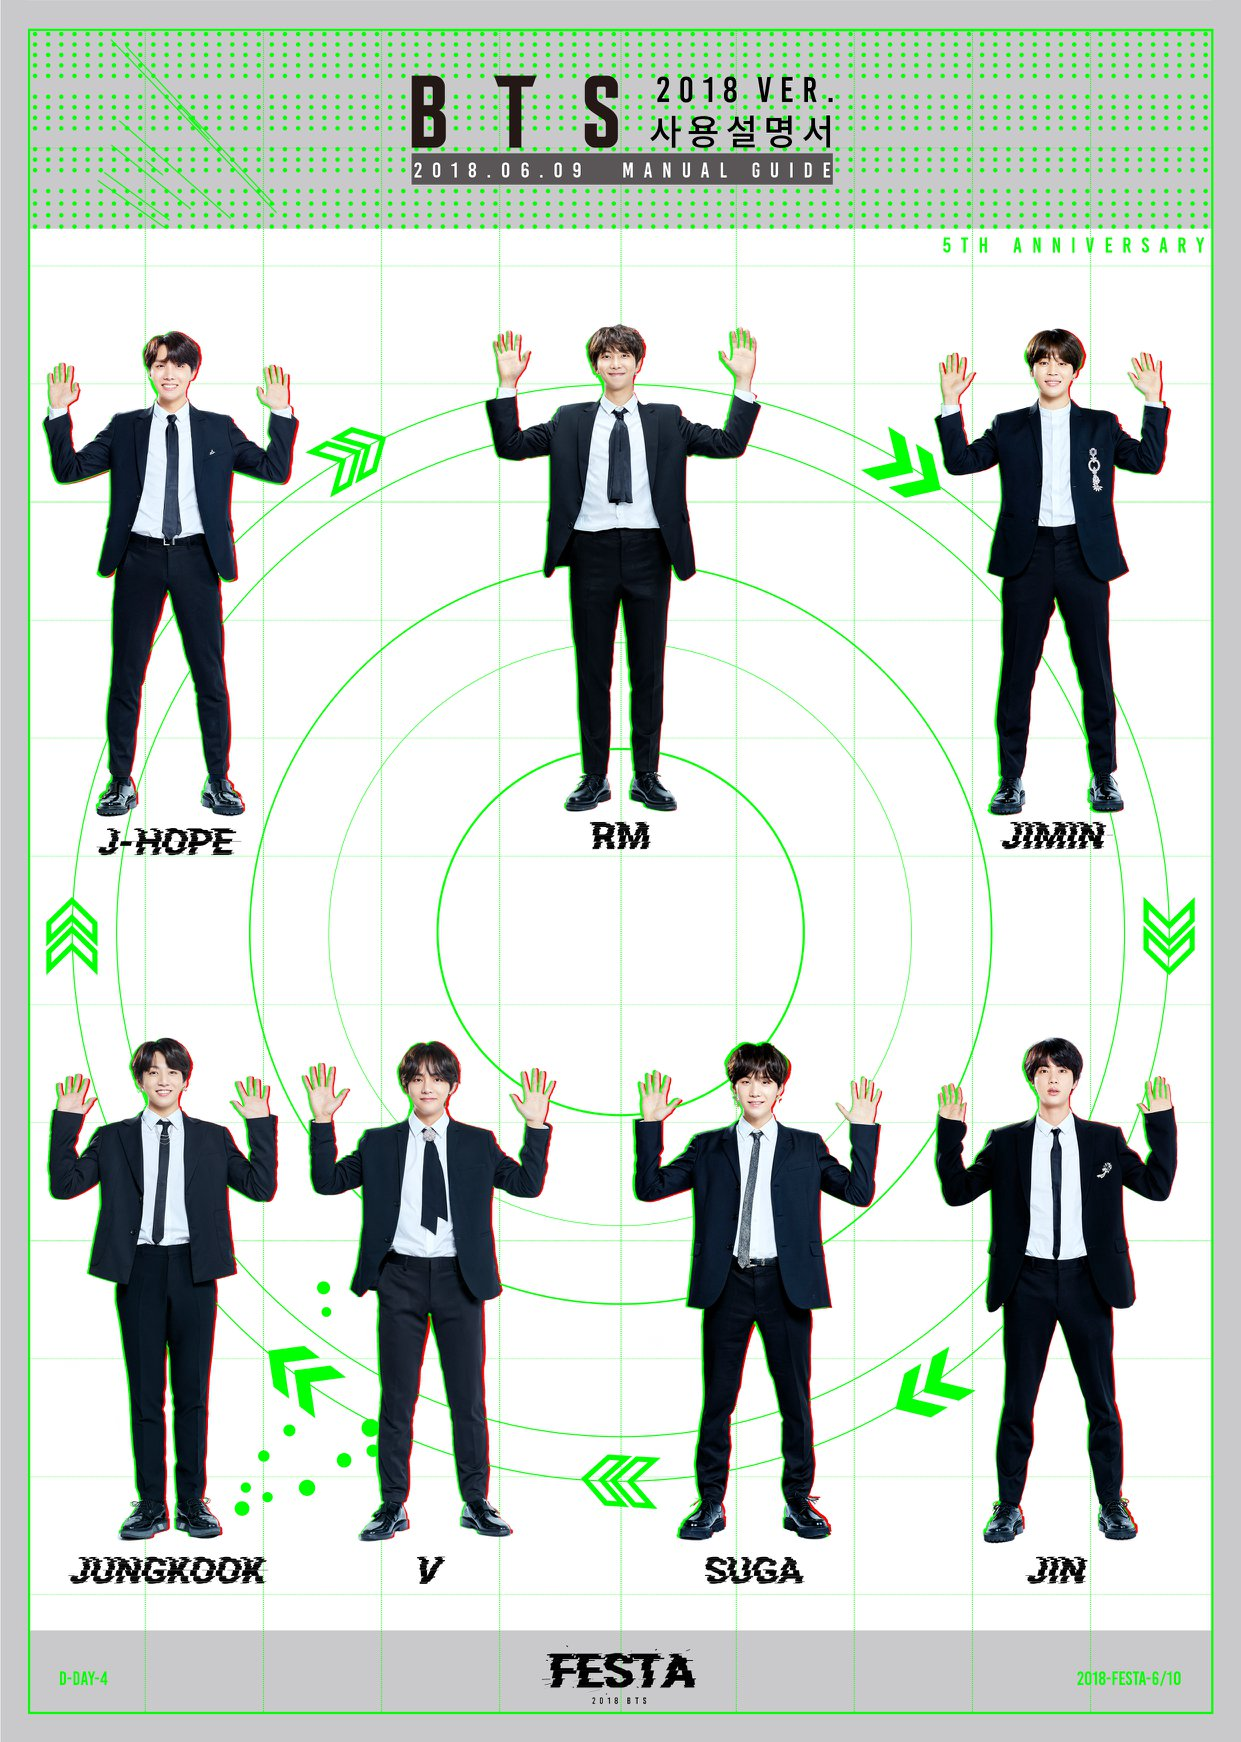 865 42637507832 d7b9ac01be o - [Picture] 2018 BTS FESTA : BTS MANUAL GUIDE [180809]